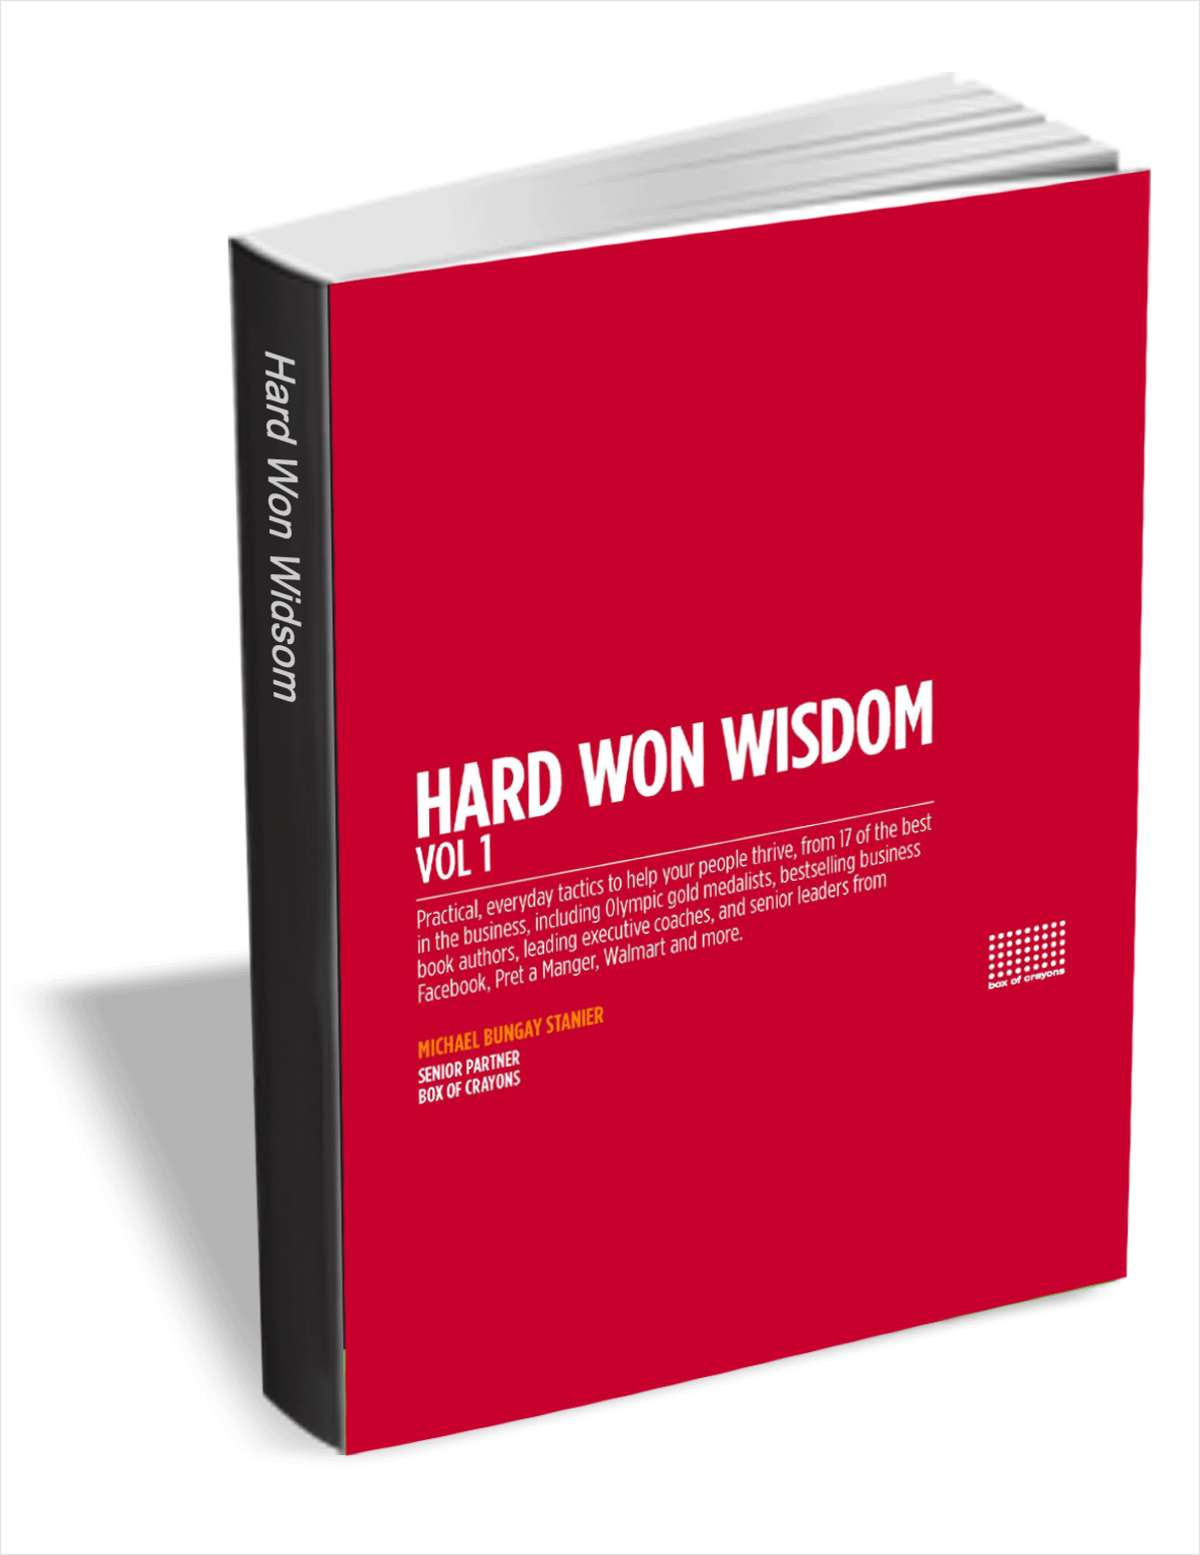 Hard Won Wisdom: Practical, Everyday Tactics to Help Your People Thrive